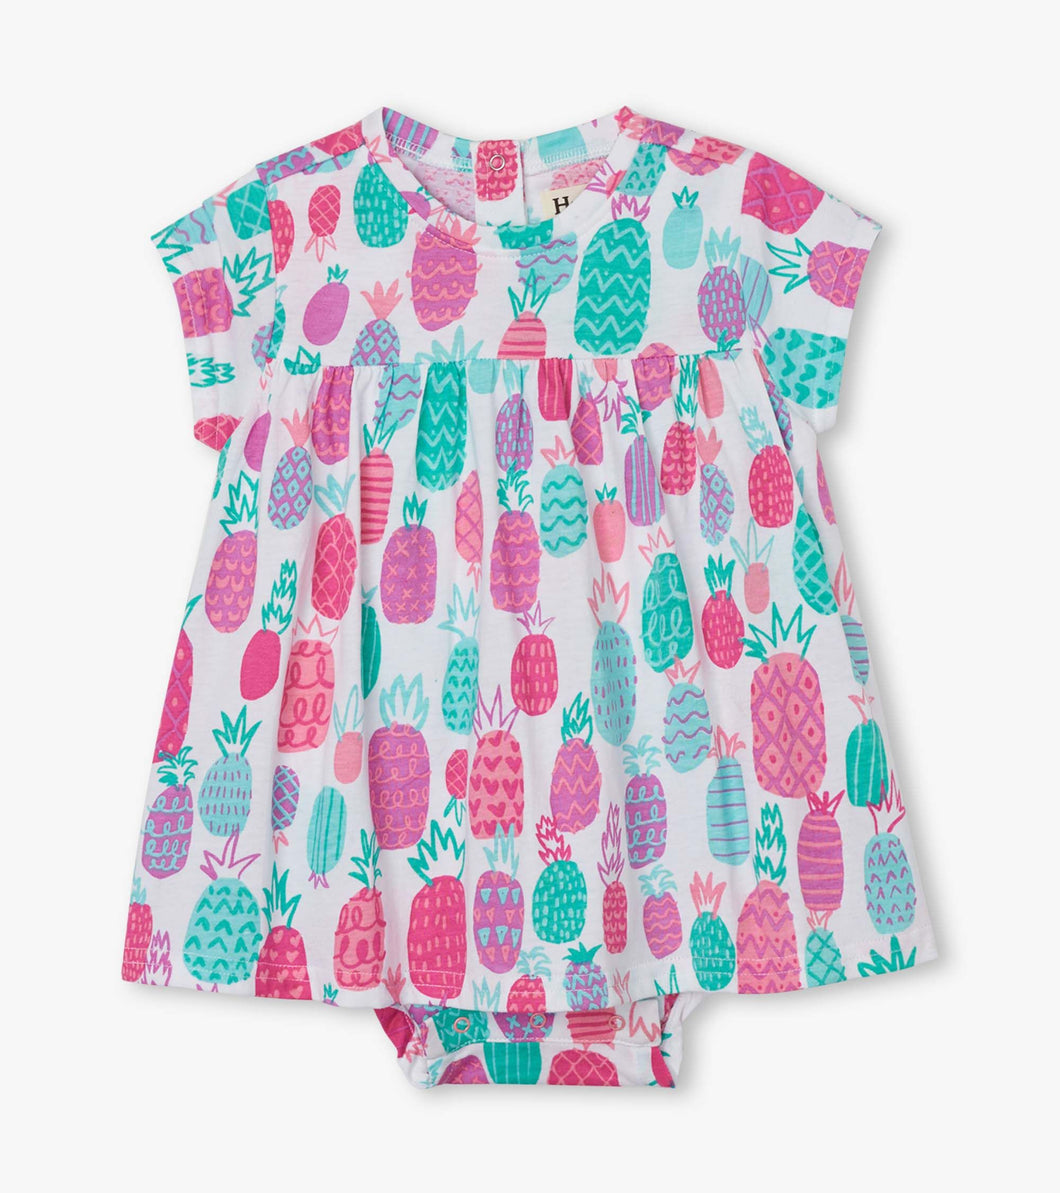 Pineapple Doodles Baby One-Piece Dress by Hatley